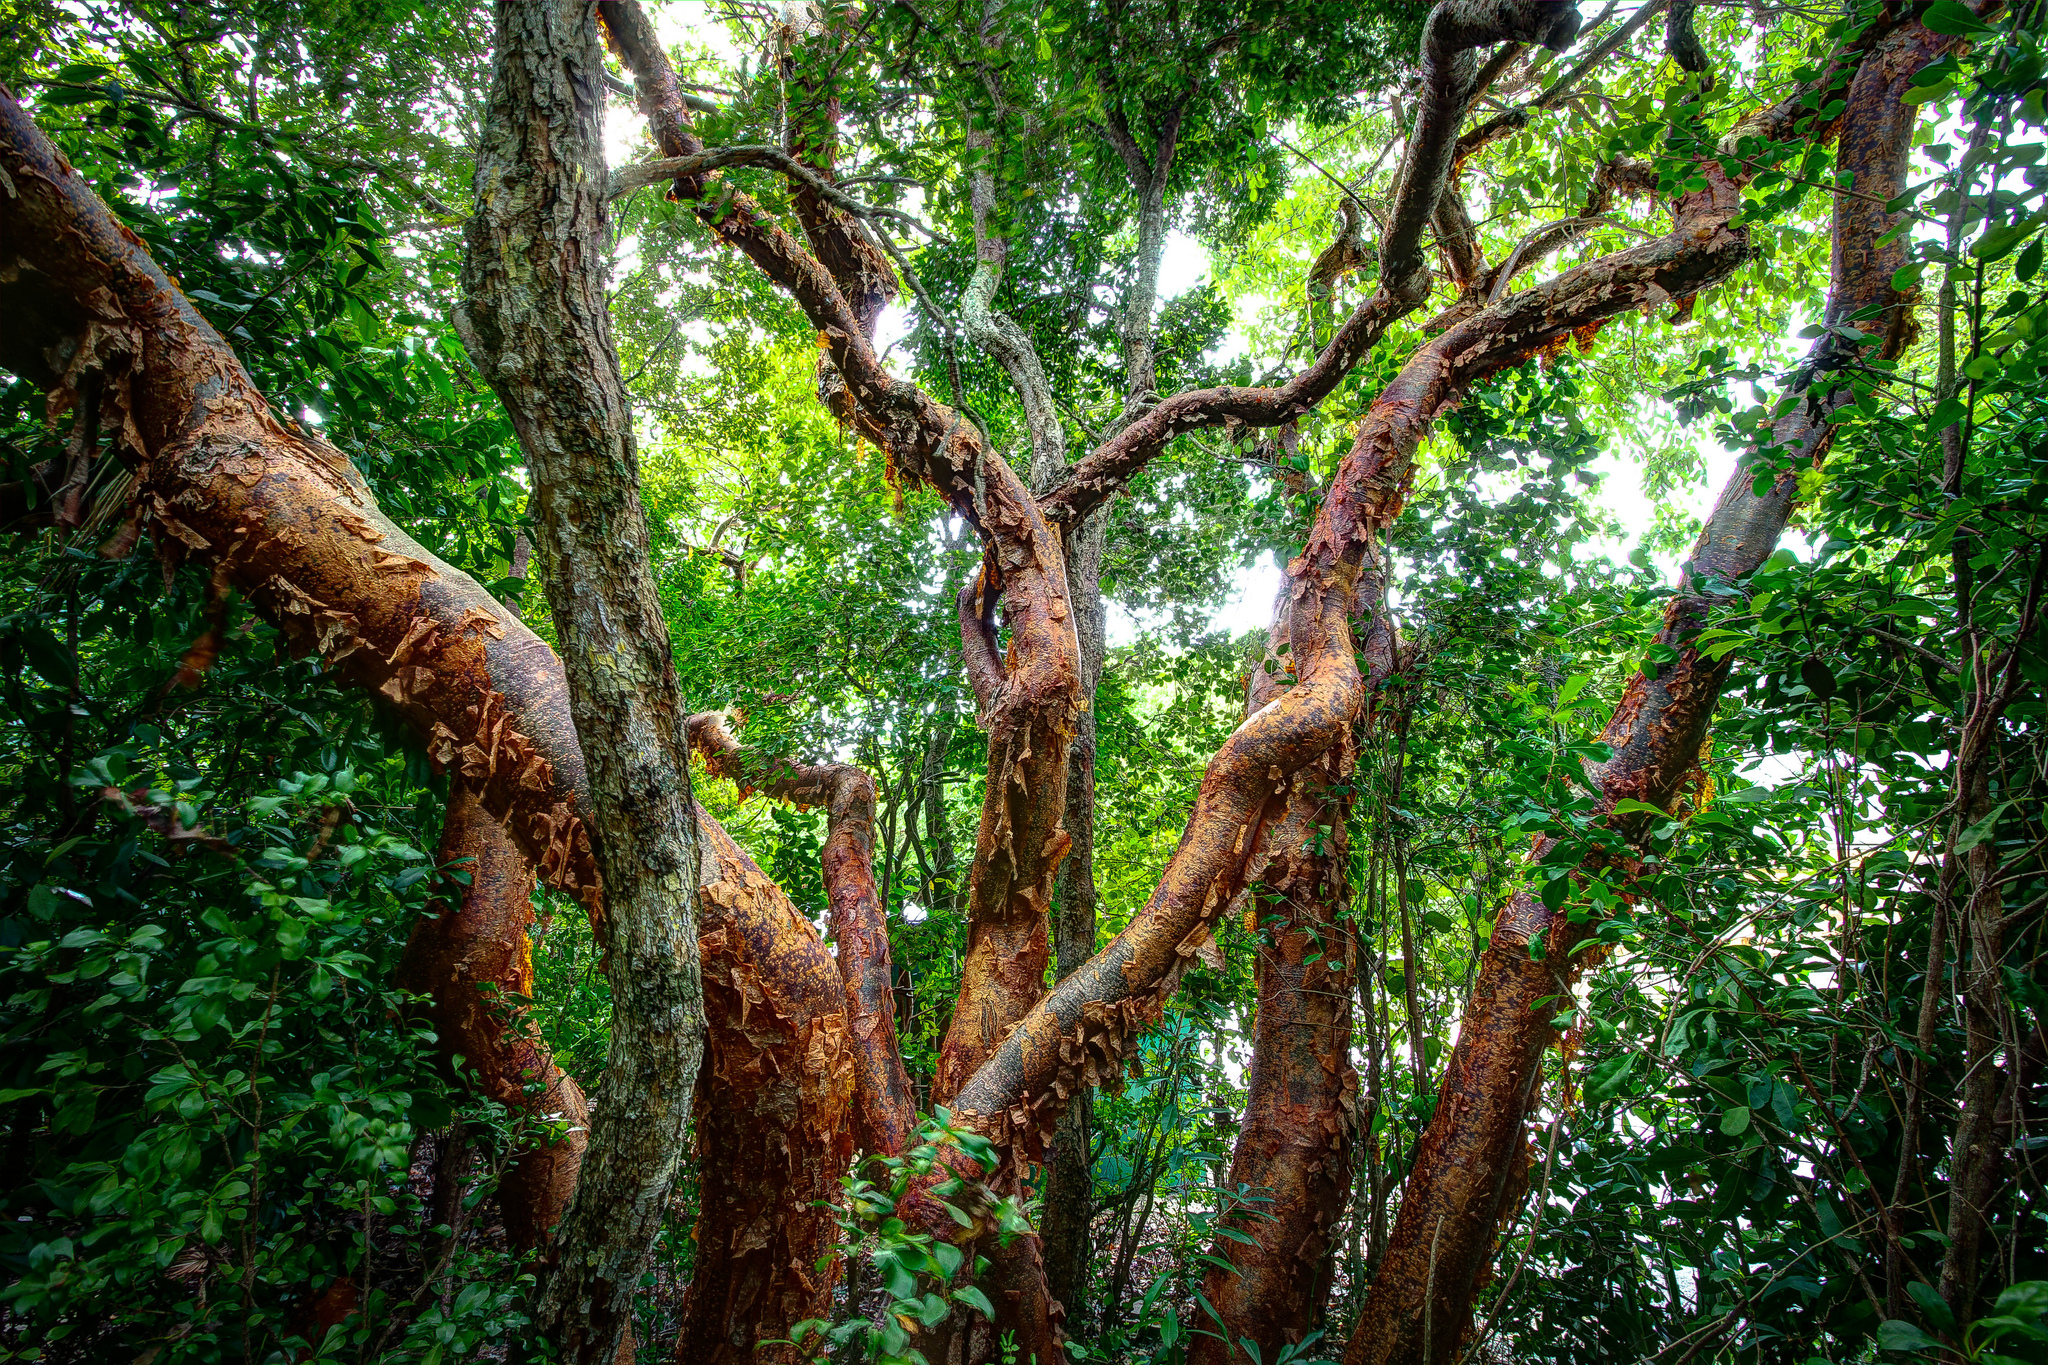 A guided tour on the Mayan Medicine Trail reveals the medicinal properties of plants such as the Red Gumbo Limbo (l) and Oregano Photo: Chaa Creek Lodge